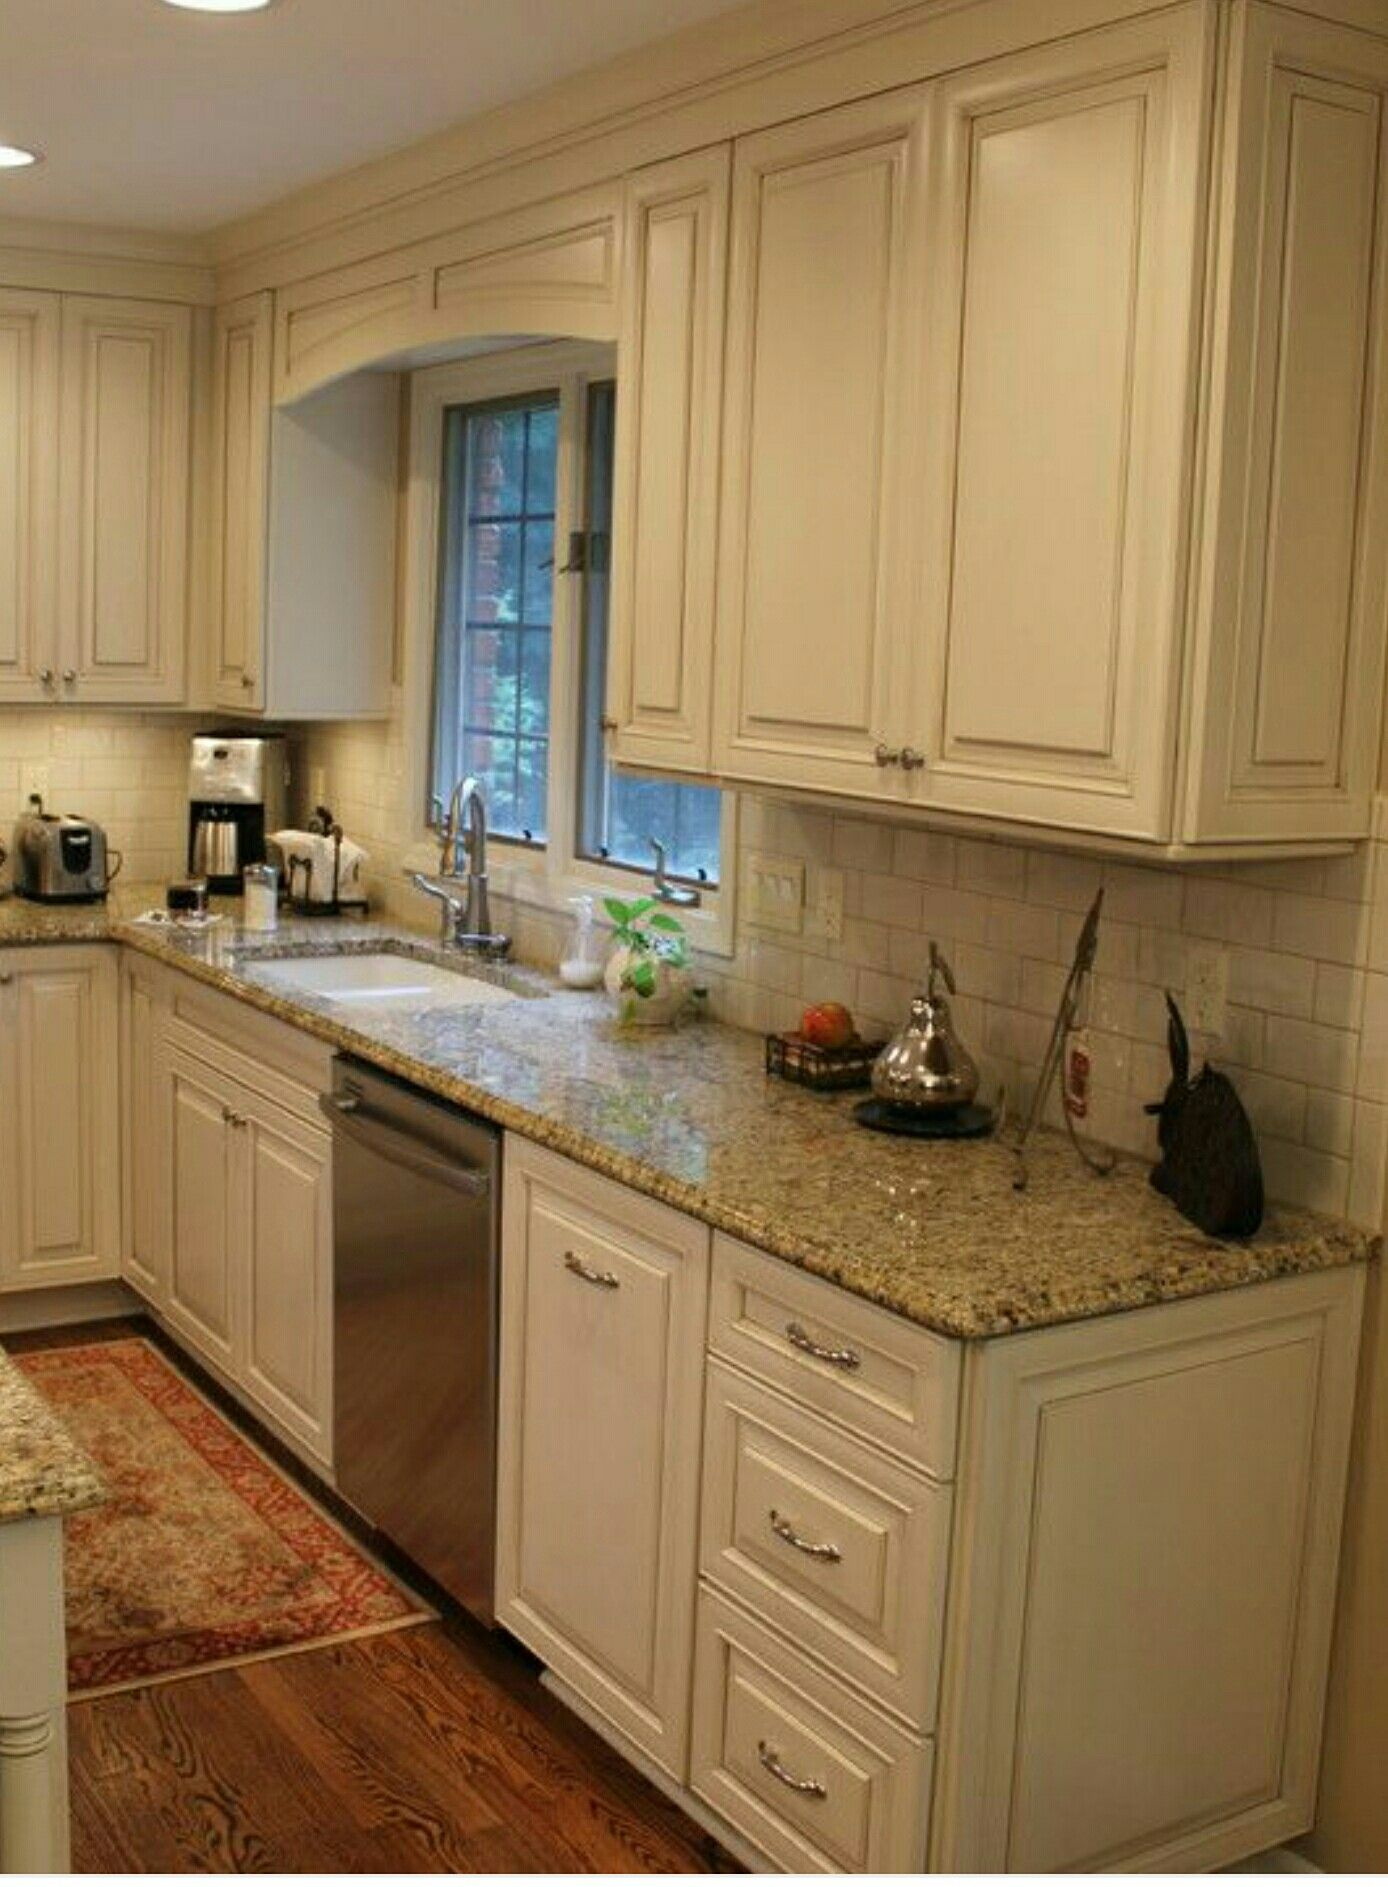 White cabinets subway tile beige granite countertops White kitchen cabinets with granite countertops photos